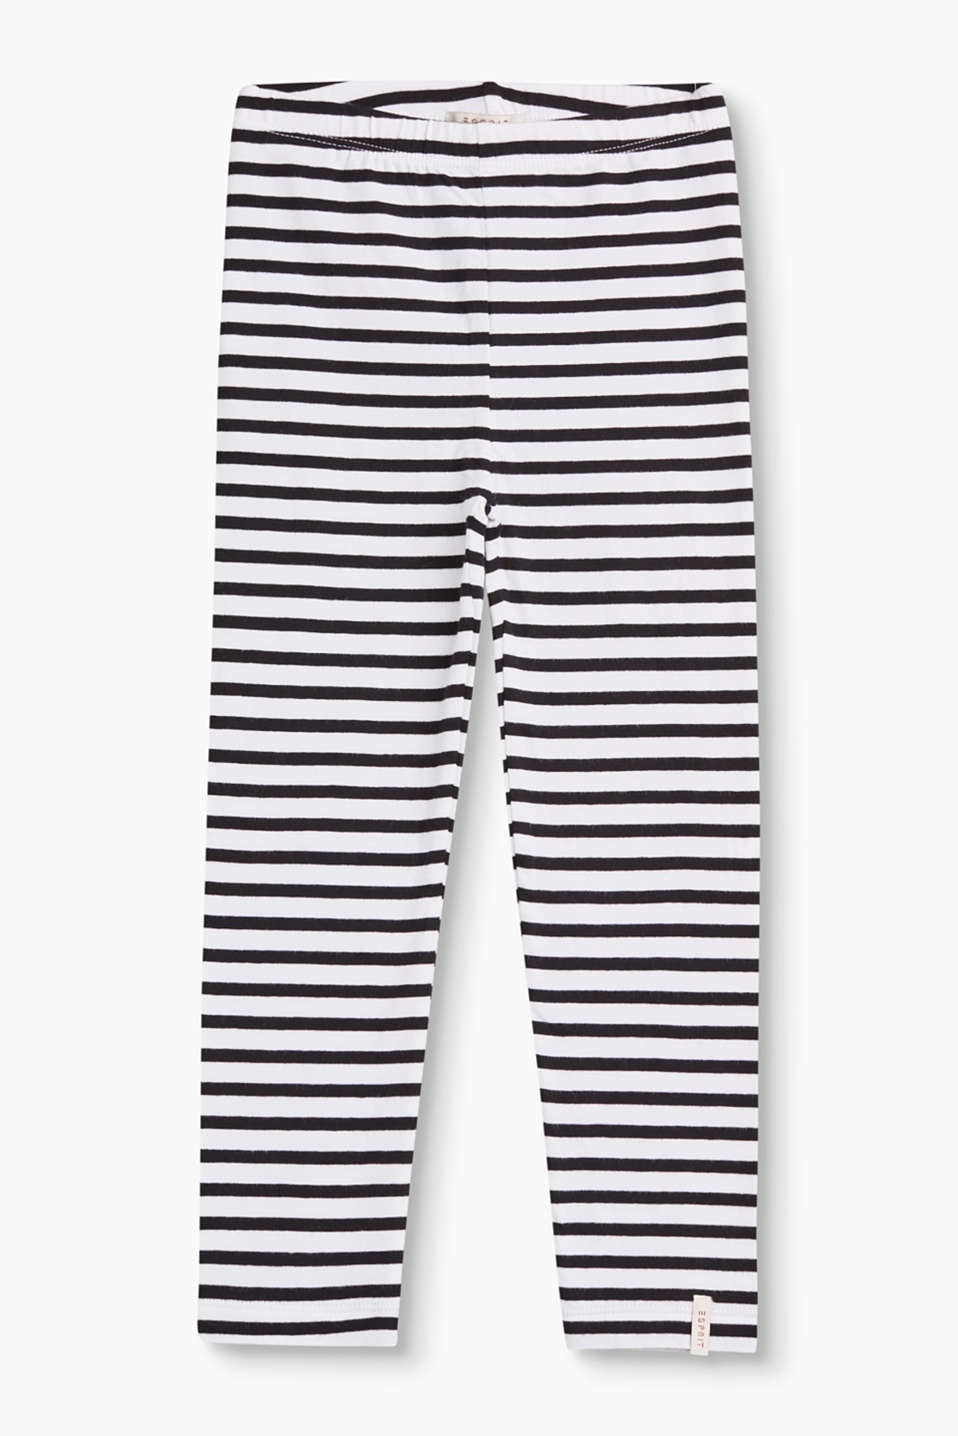 These soft cotton leggings score style points with their cheerful striped look and comfortable percentage of stretch.